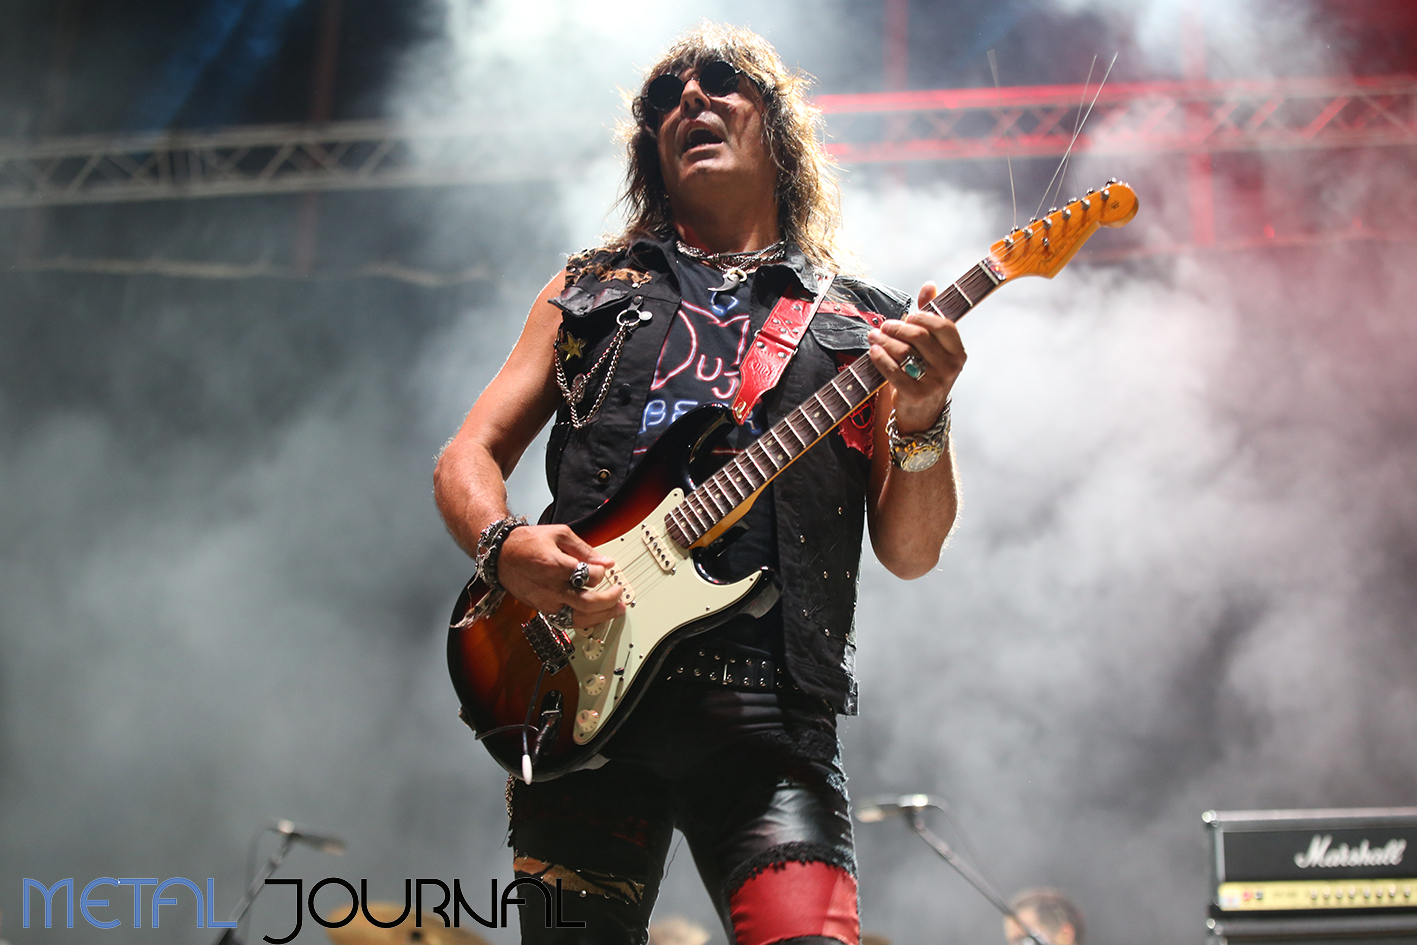 rata blanca - leyendas del rock 2019 metal journal pic 11